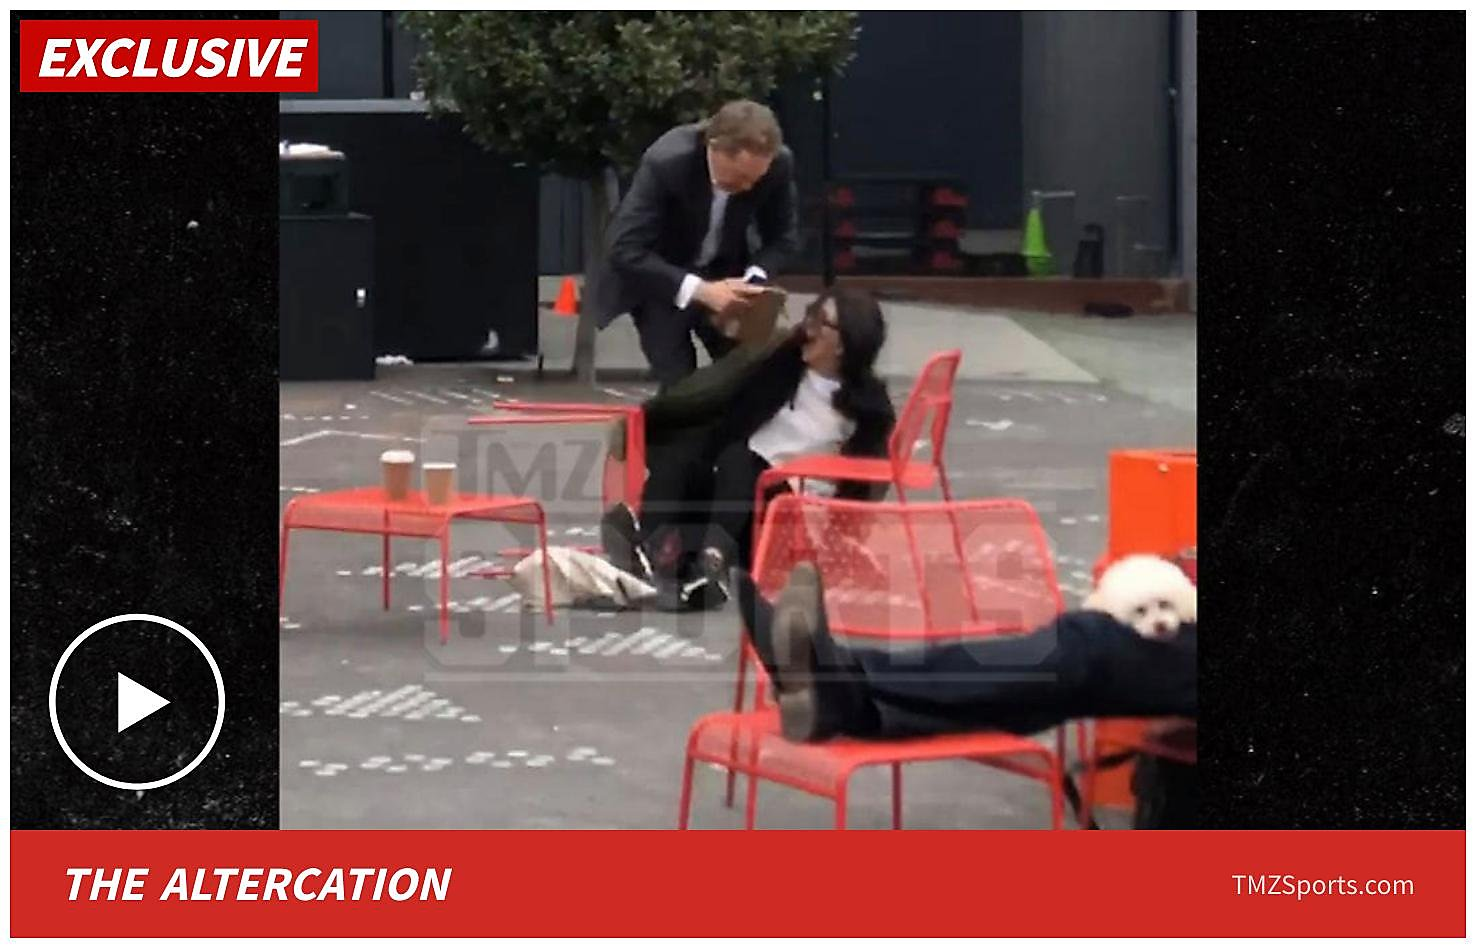 Video shows Giants CEO Larry Baer pulling wife to ground in San Francisco plaza